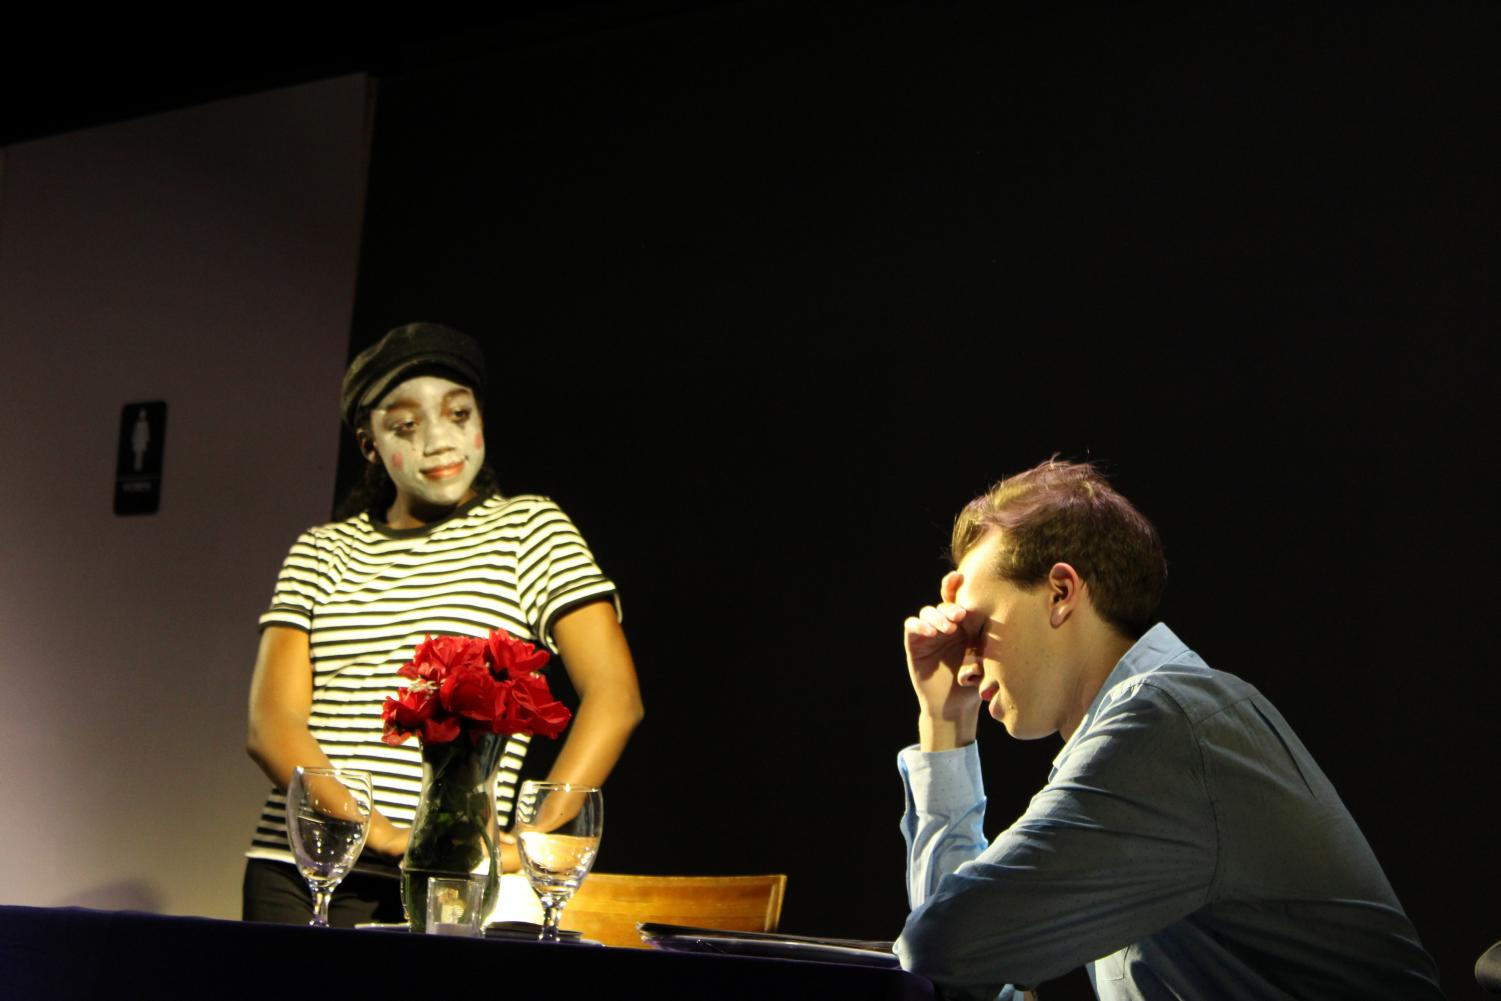 A date doesn't end well when someone comes dressed as a mime...